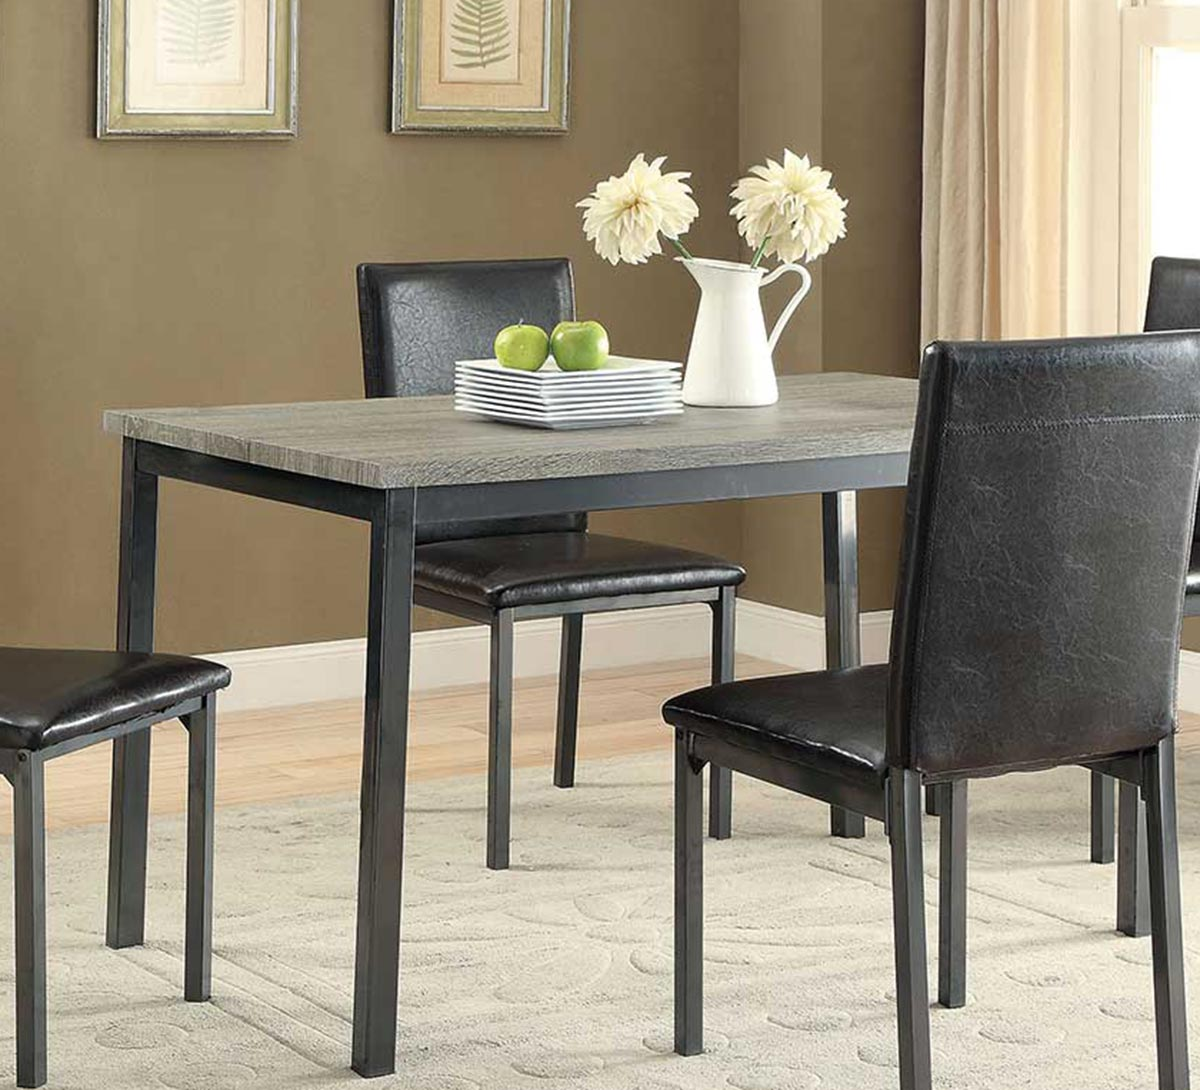 Coaster Lexton 101561 Rectangular Dining Table With 18: Coaster Garza Rectangular Dining Table